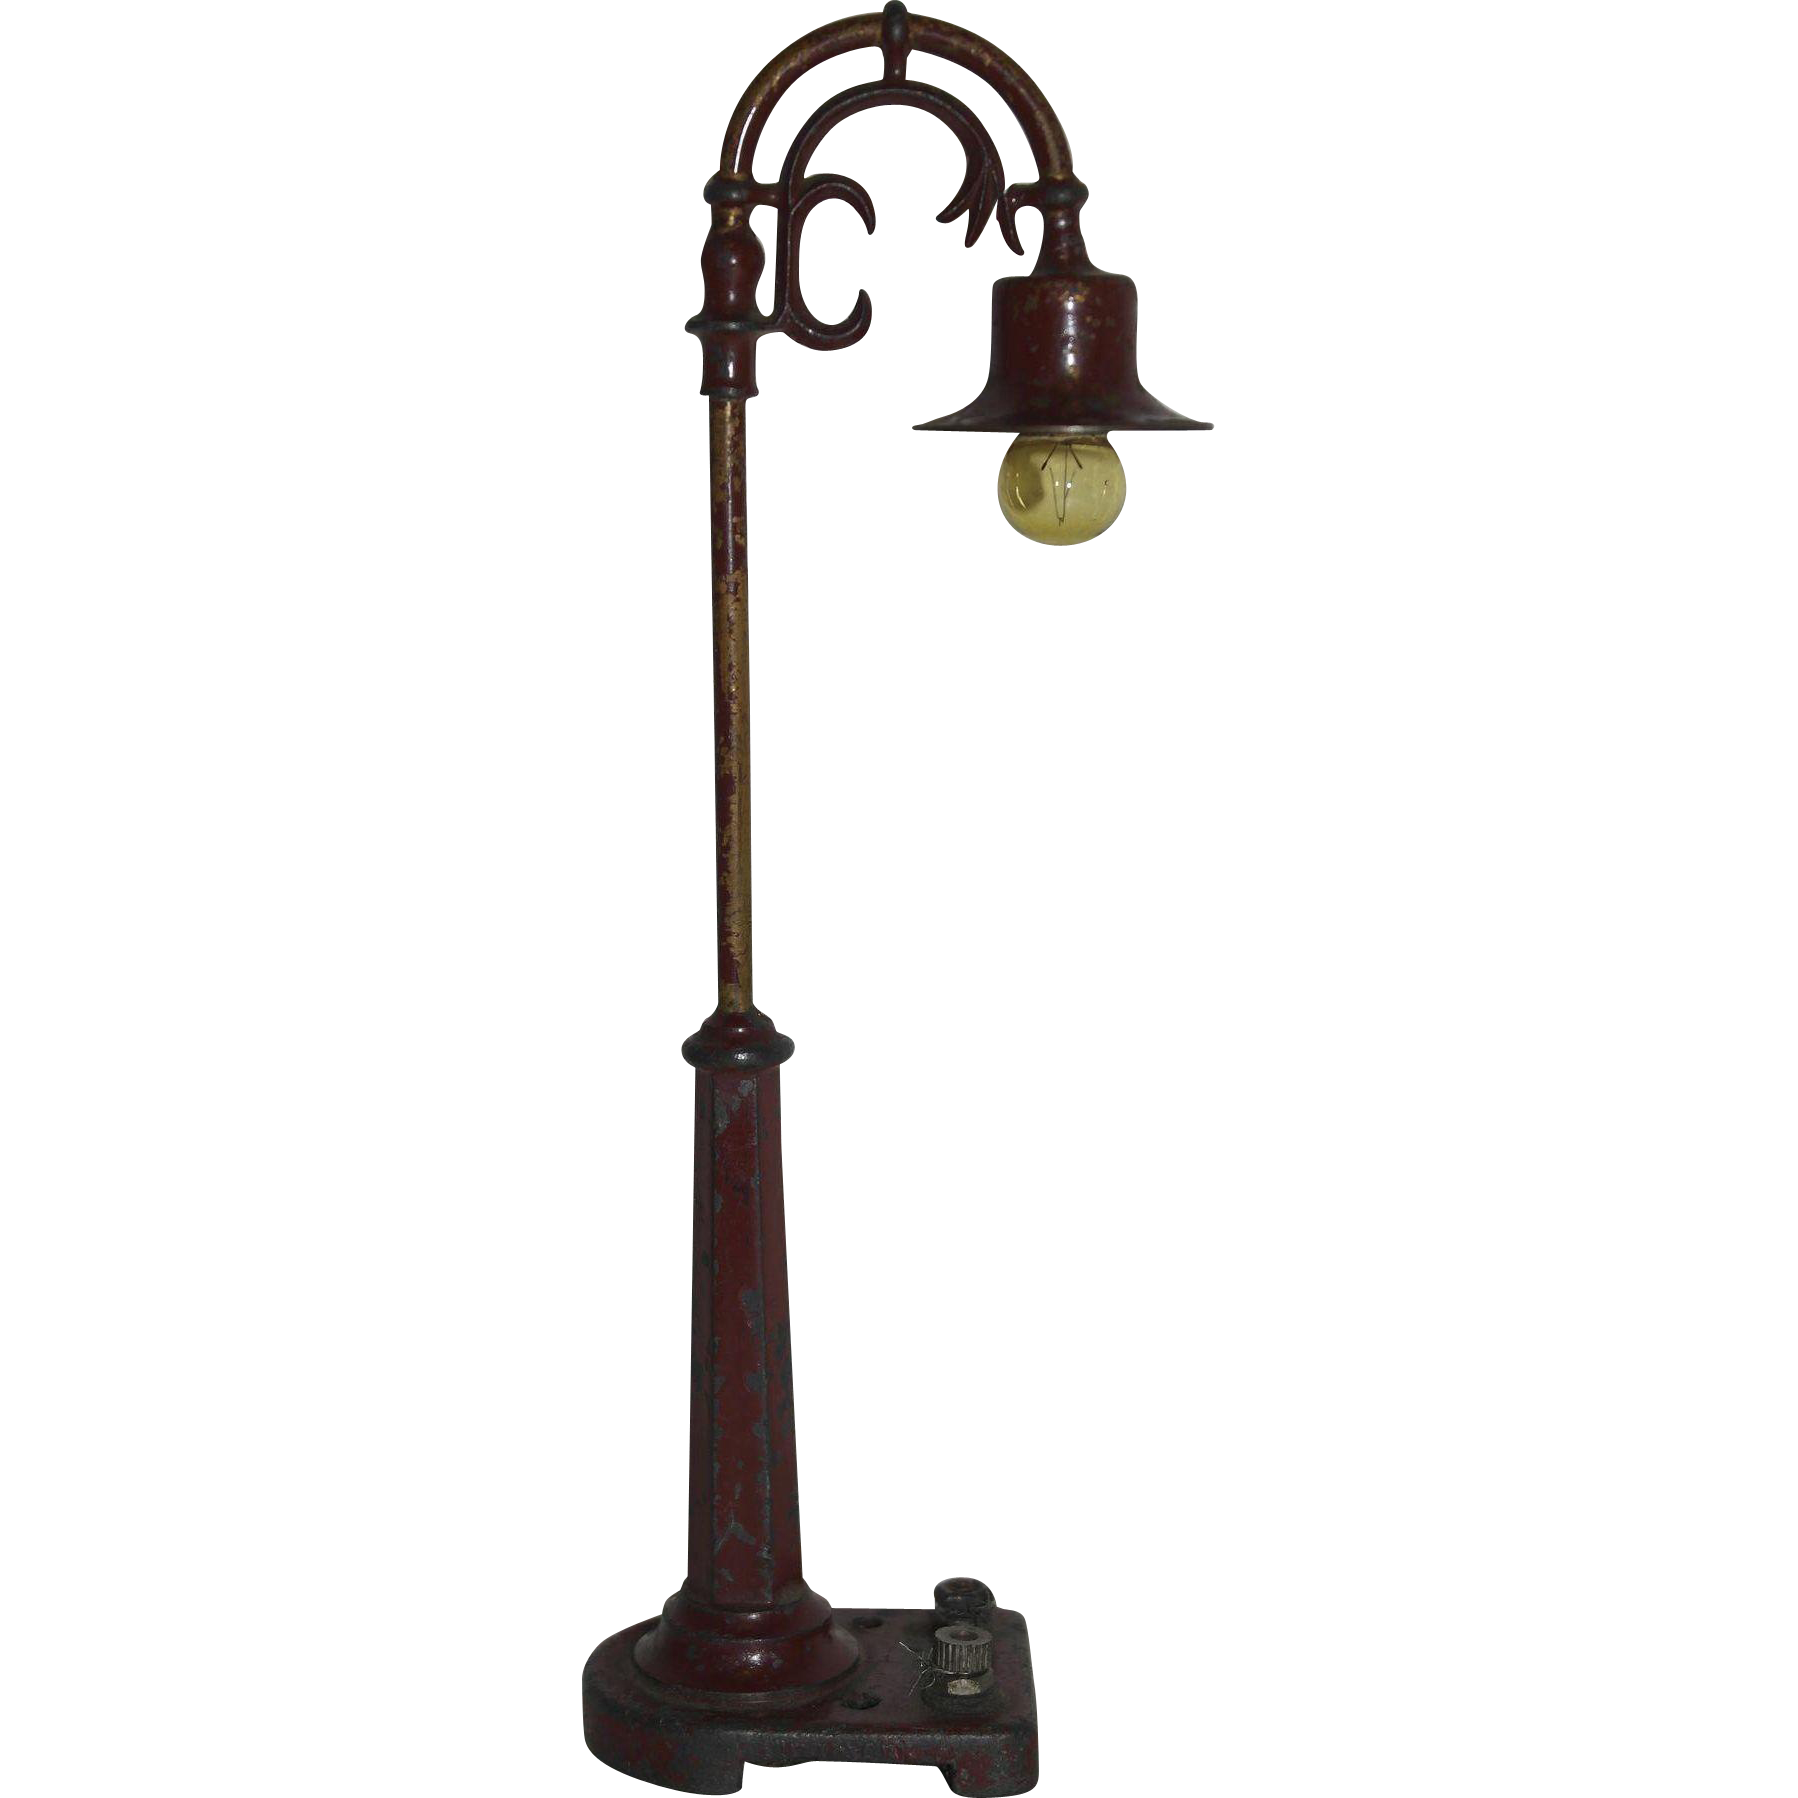 lamps small lighting porch depot lantern ss home suehirofc post lamp black bing solar images endon outdoor posts a